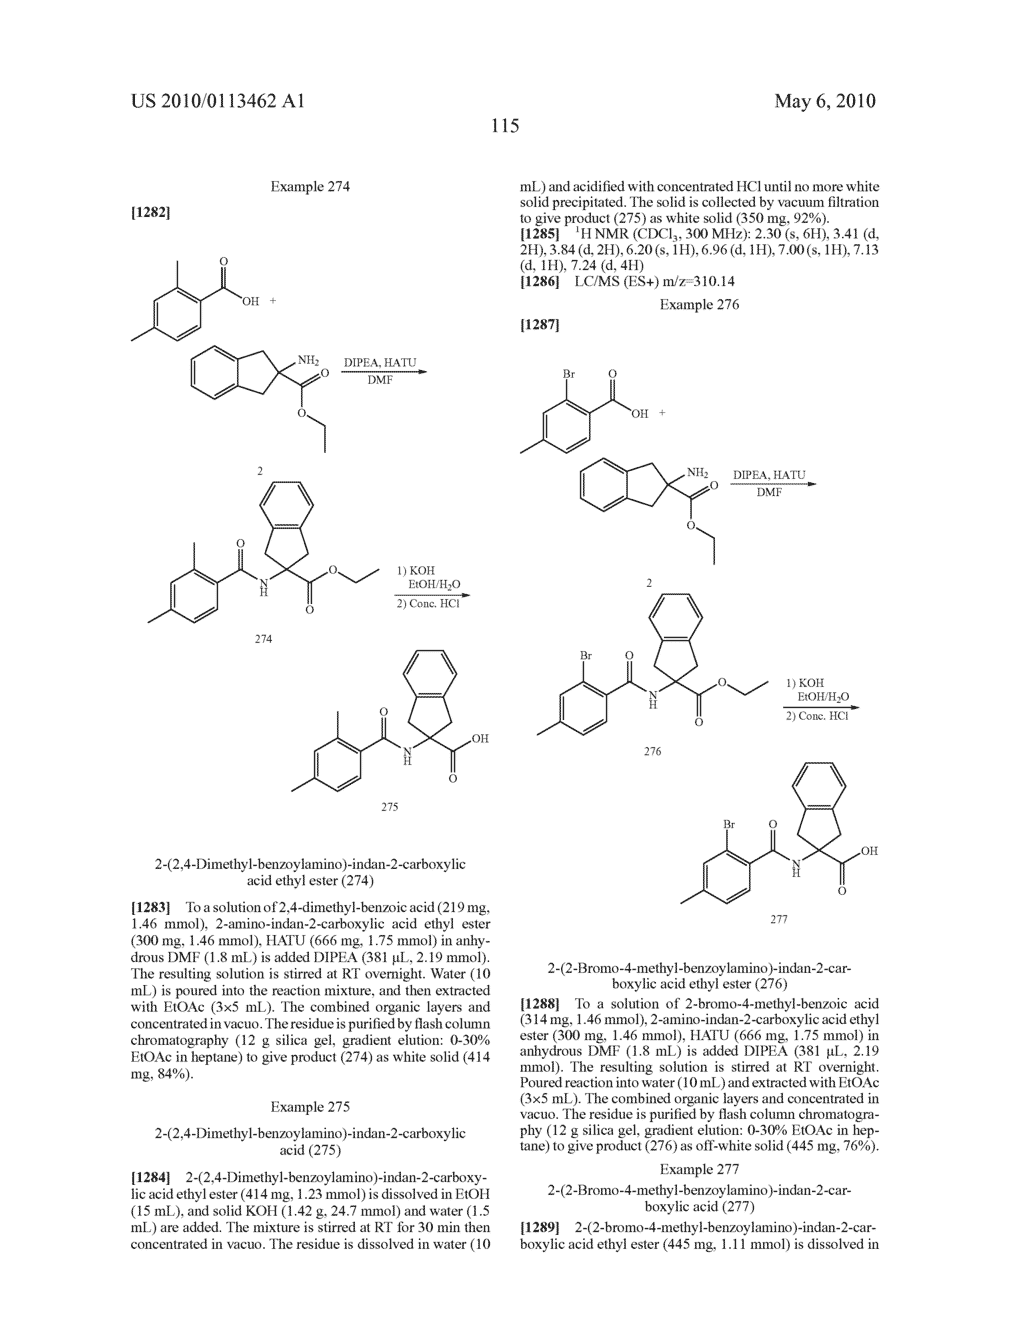 SUBSTITUTED BENZOYLAMINO-INDAN-2-CARBOXYLIC ACIDS AND RELATED COMPOUNDS - diagram, schematic, and image 116